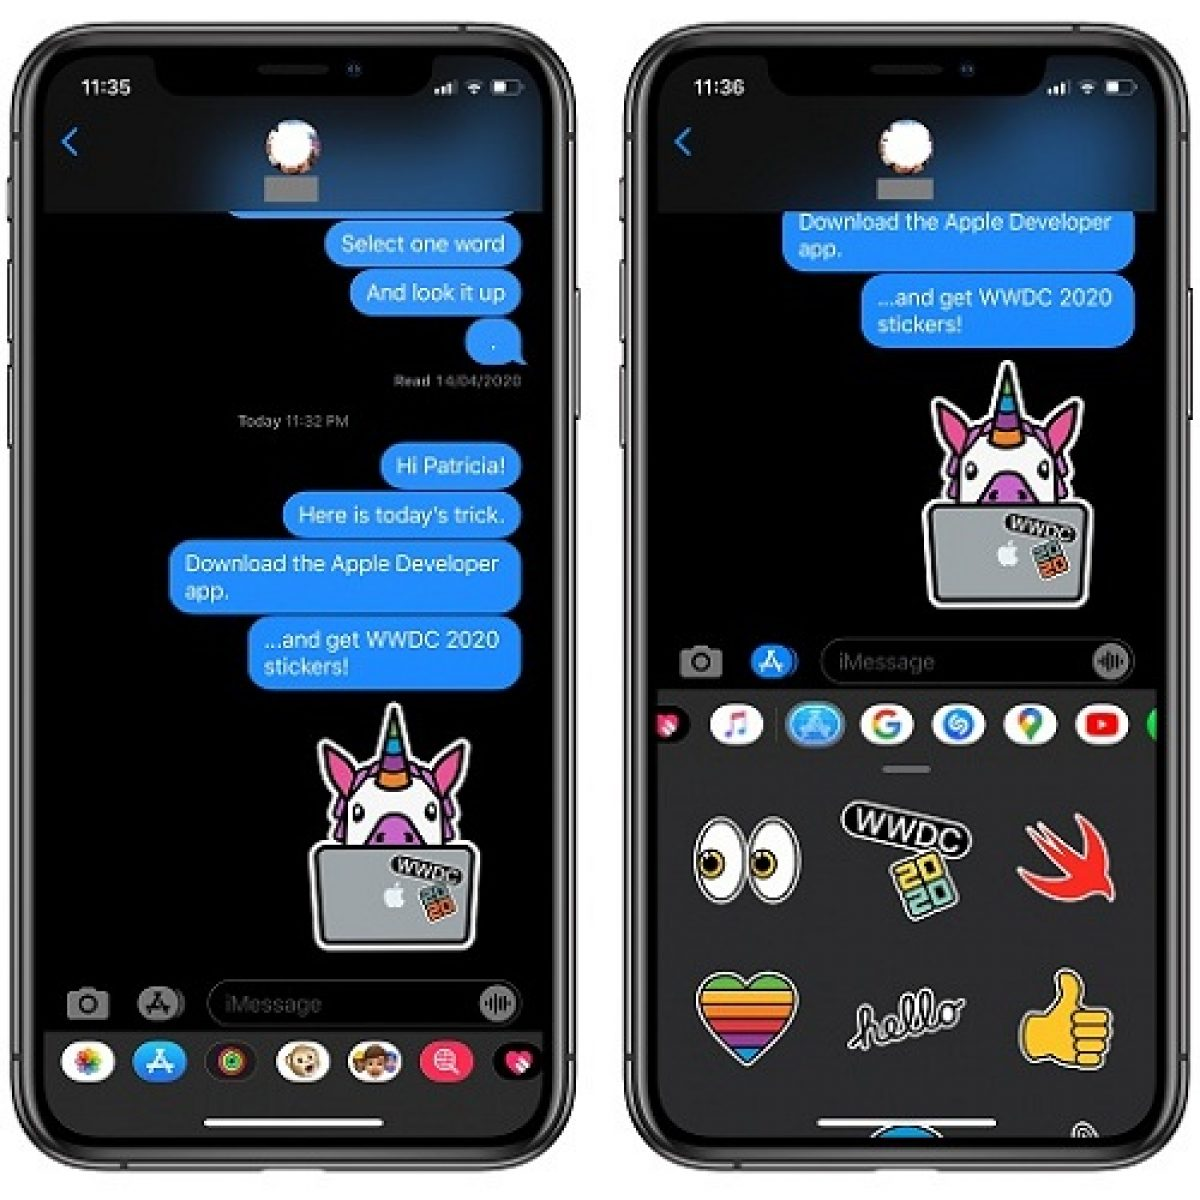 How To Unlock Wwdc 2020 Stickers In Messages On Iphone Ipad And Mac